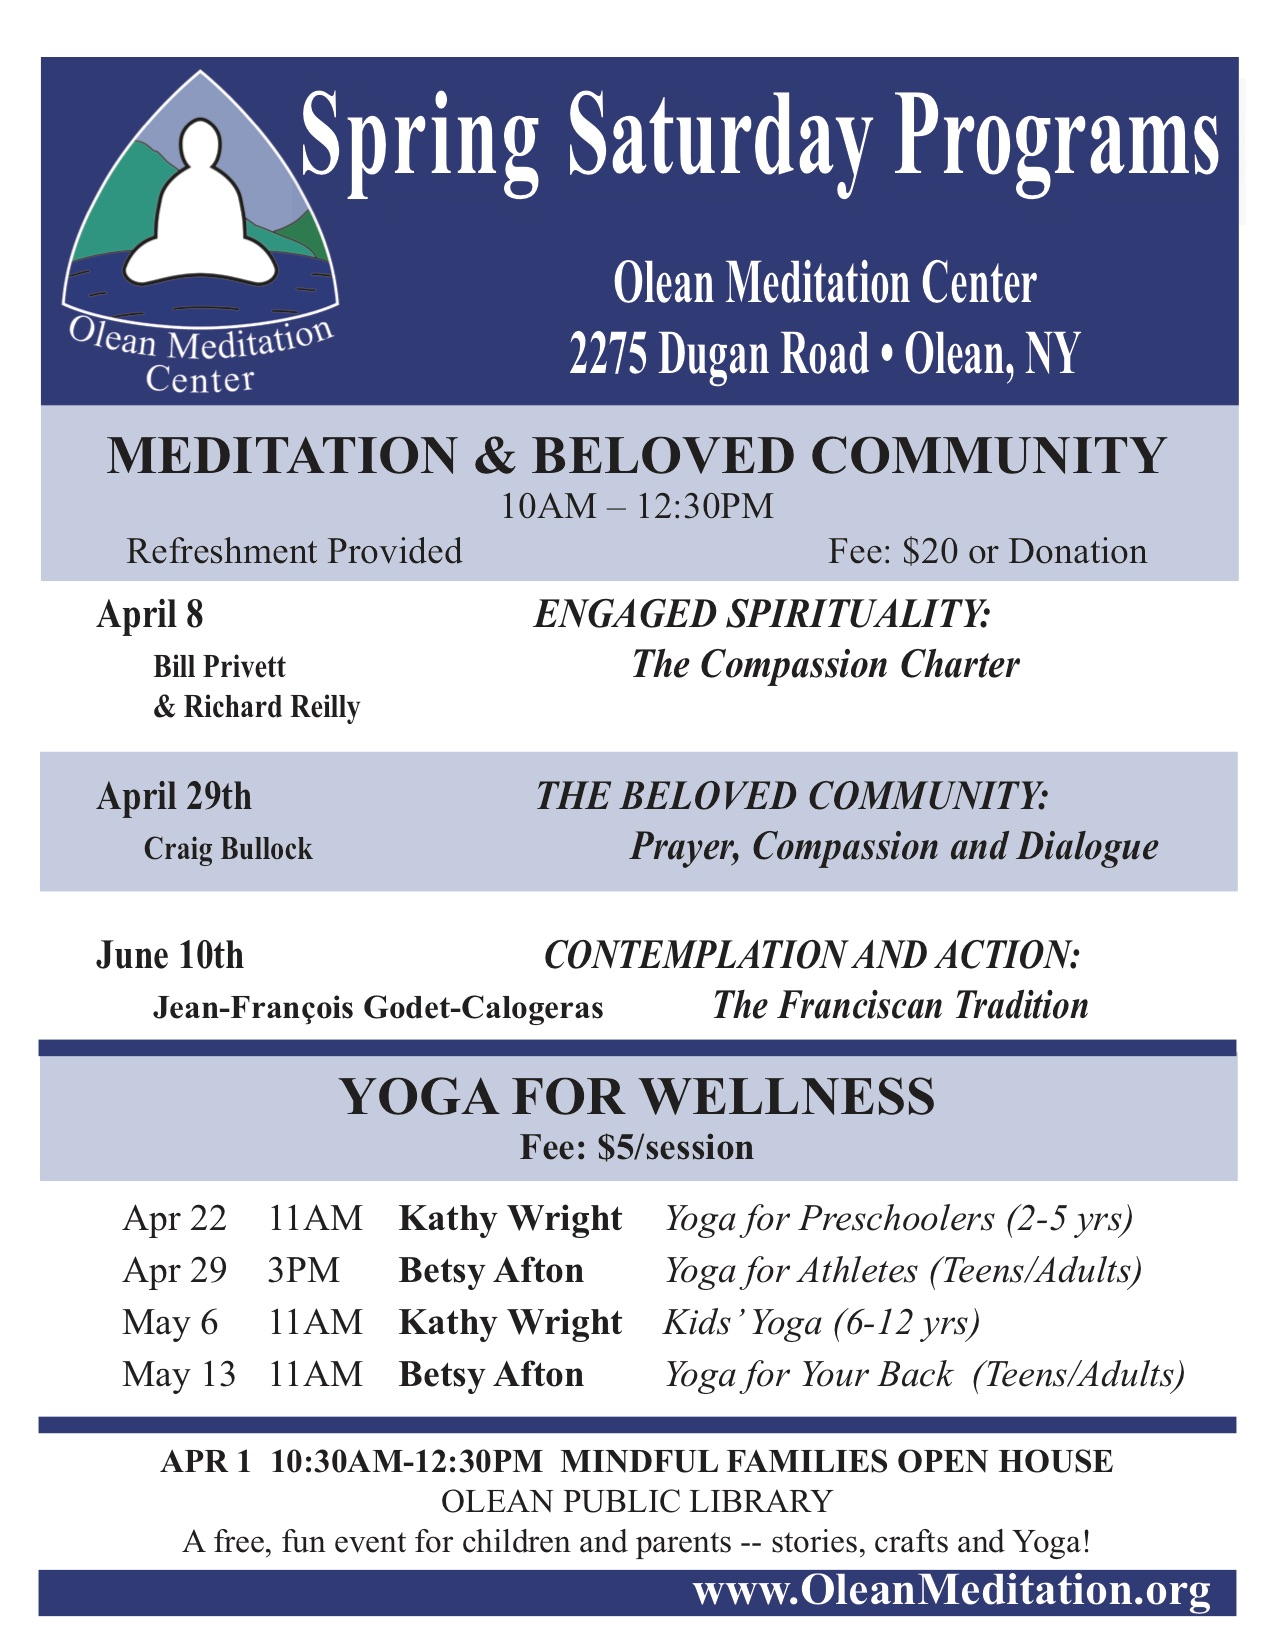 Spring Saturday Programs: Meditation & Beloved Community